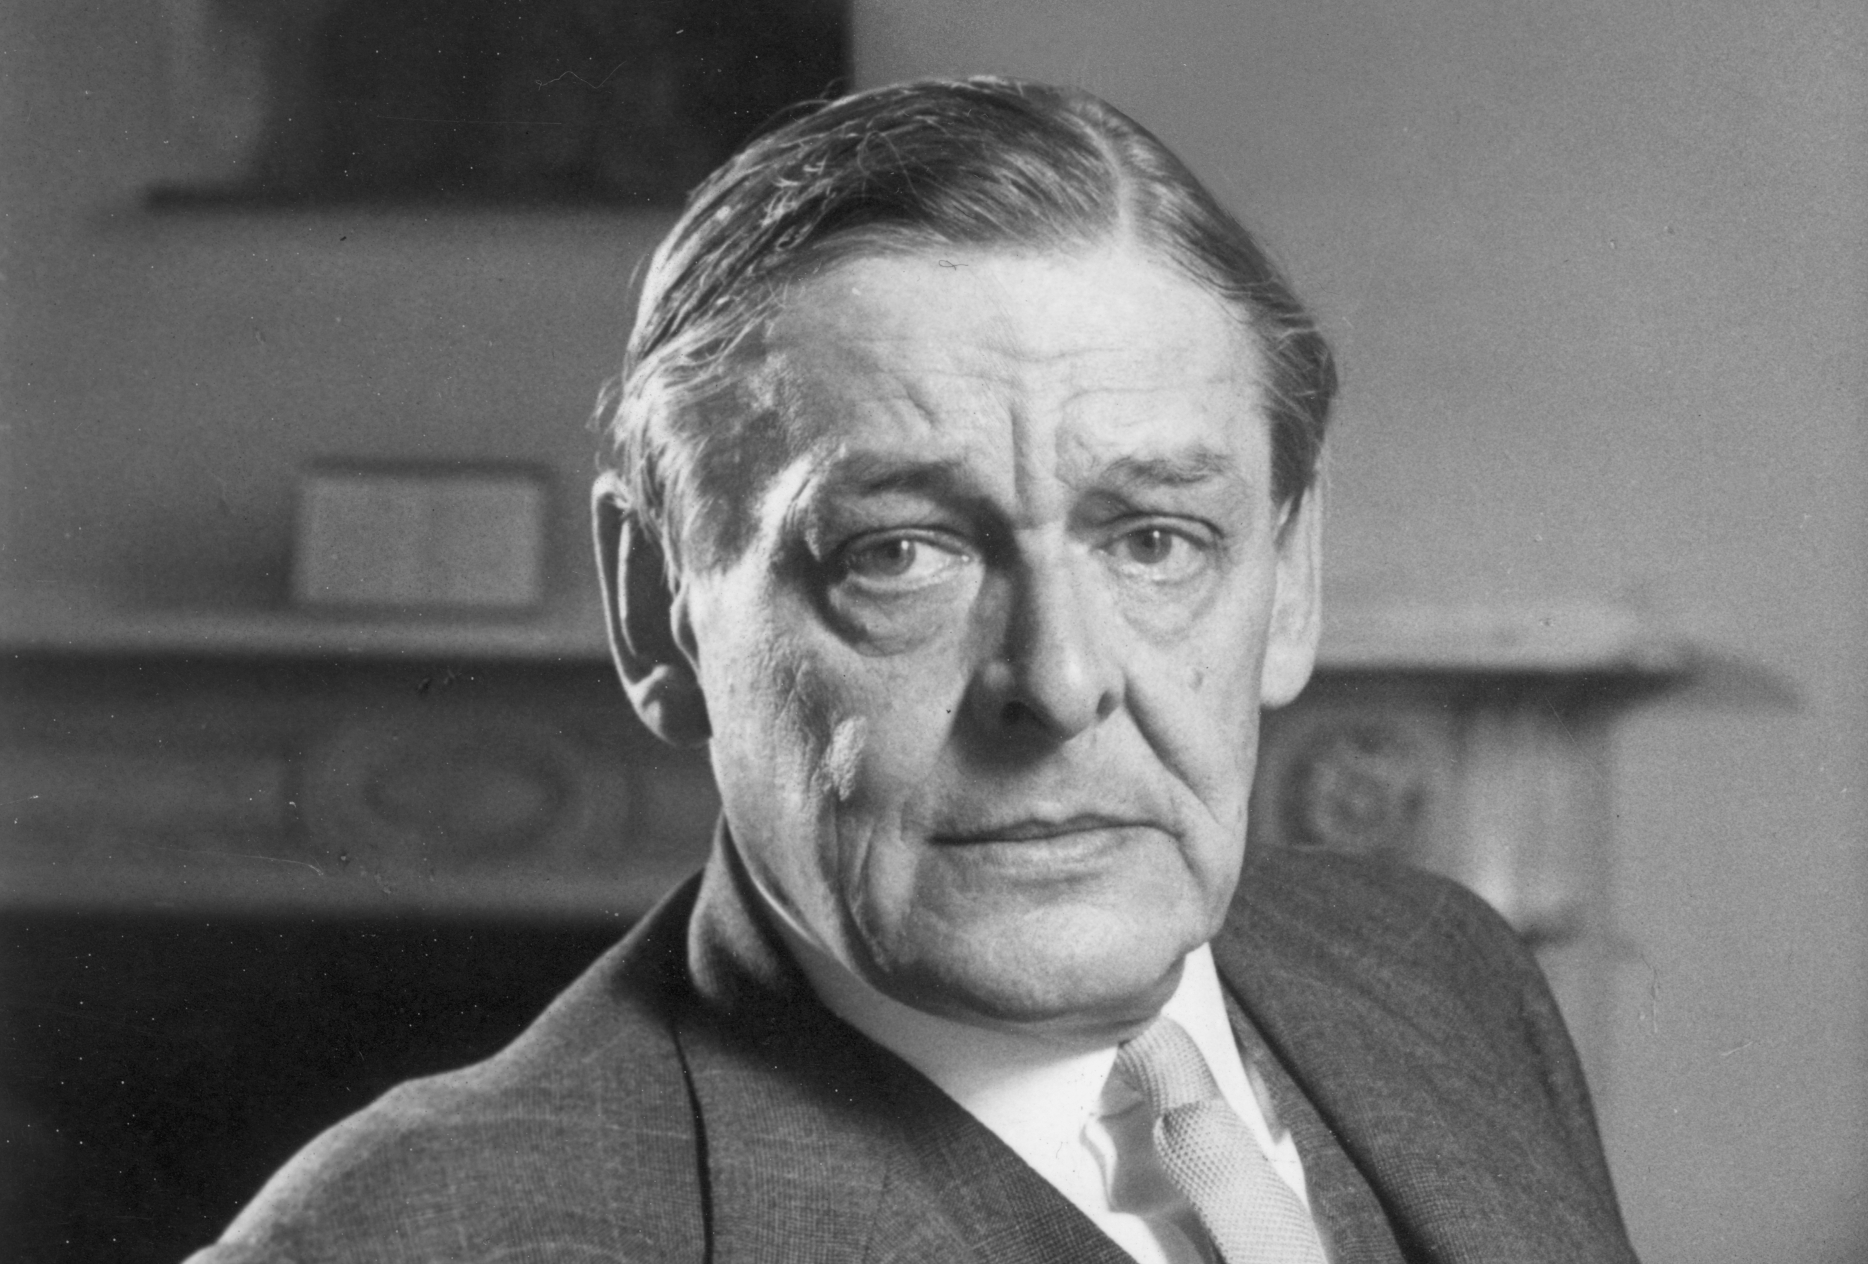 an examination of the love song of j alfred prufrock by ts eliot The article critiques the poem the love song of j alfred prufrock, by t s eliot love song of j alfred prufrock as examination of whether prufrock.